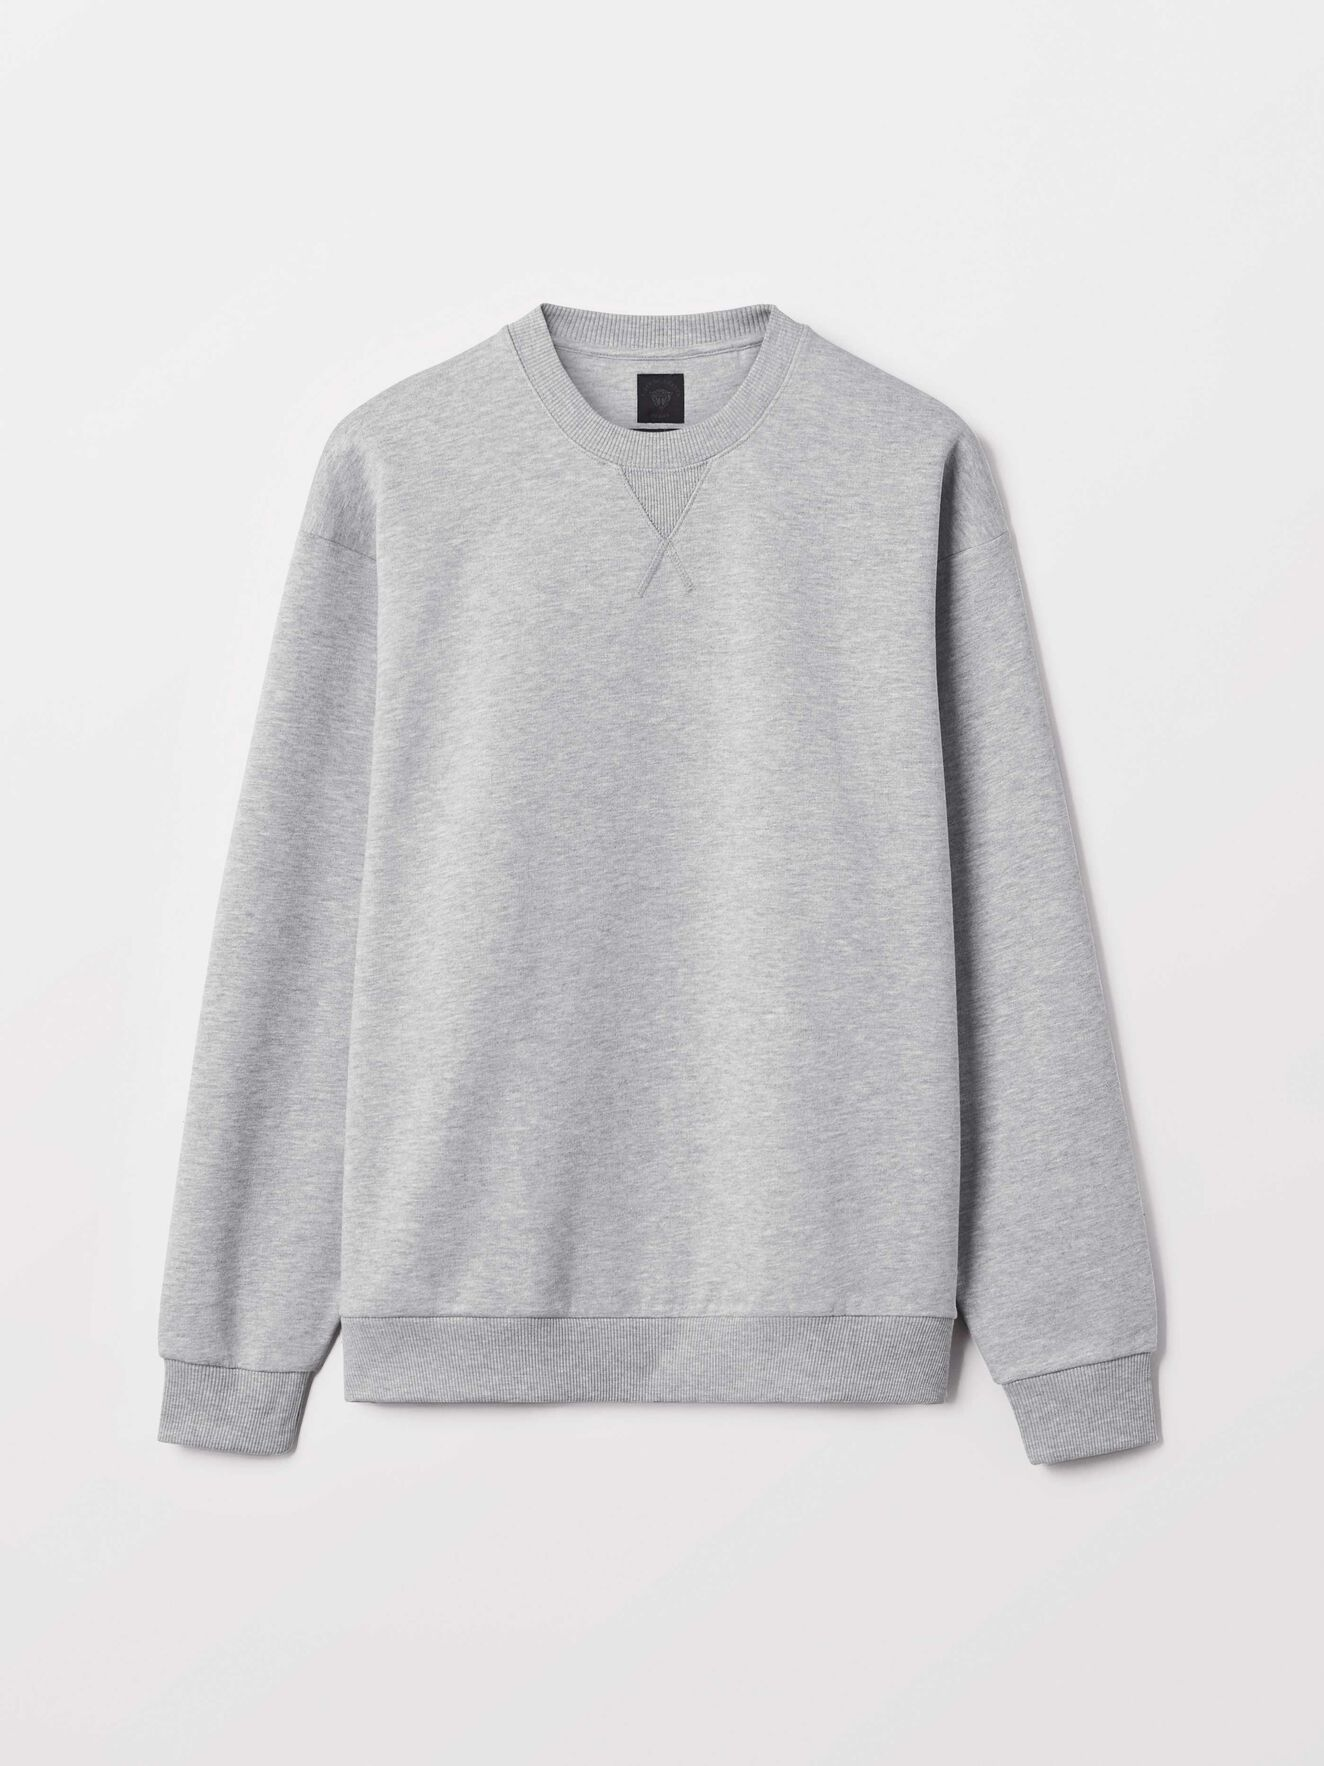 Tom So Sweatshirt in Med Grey Mel from Tiger of Sweden